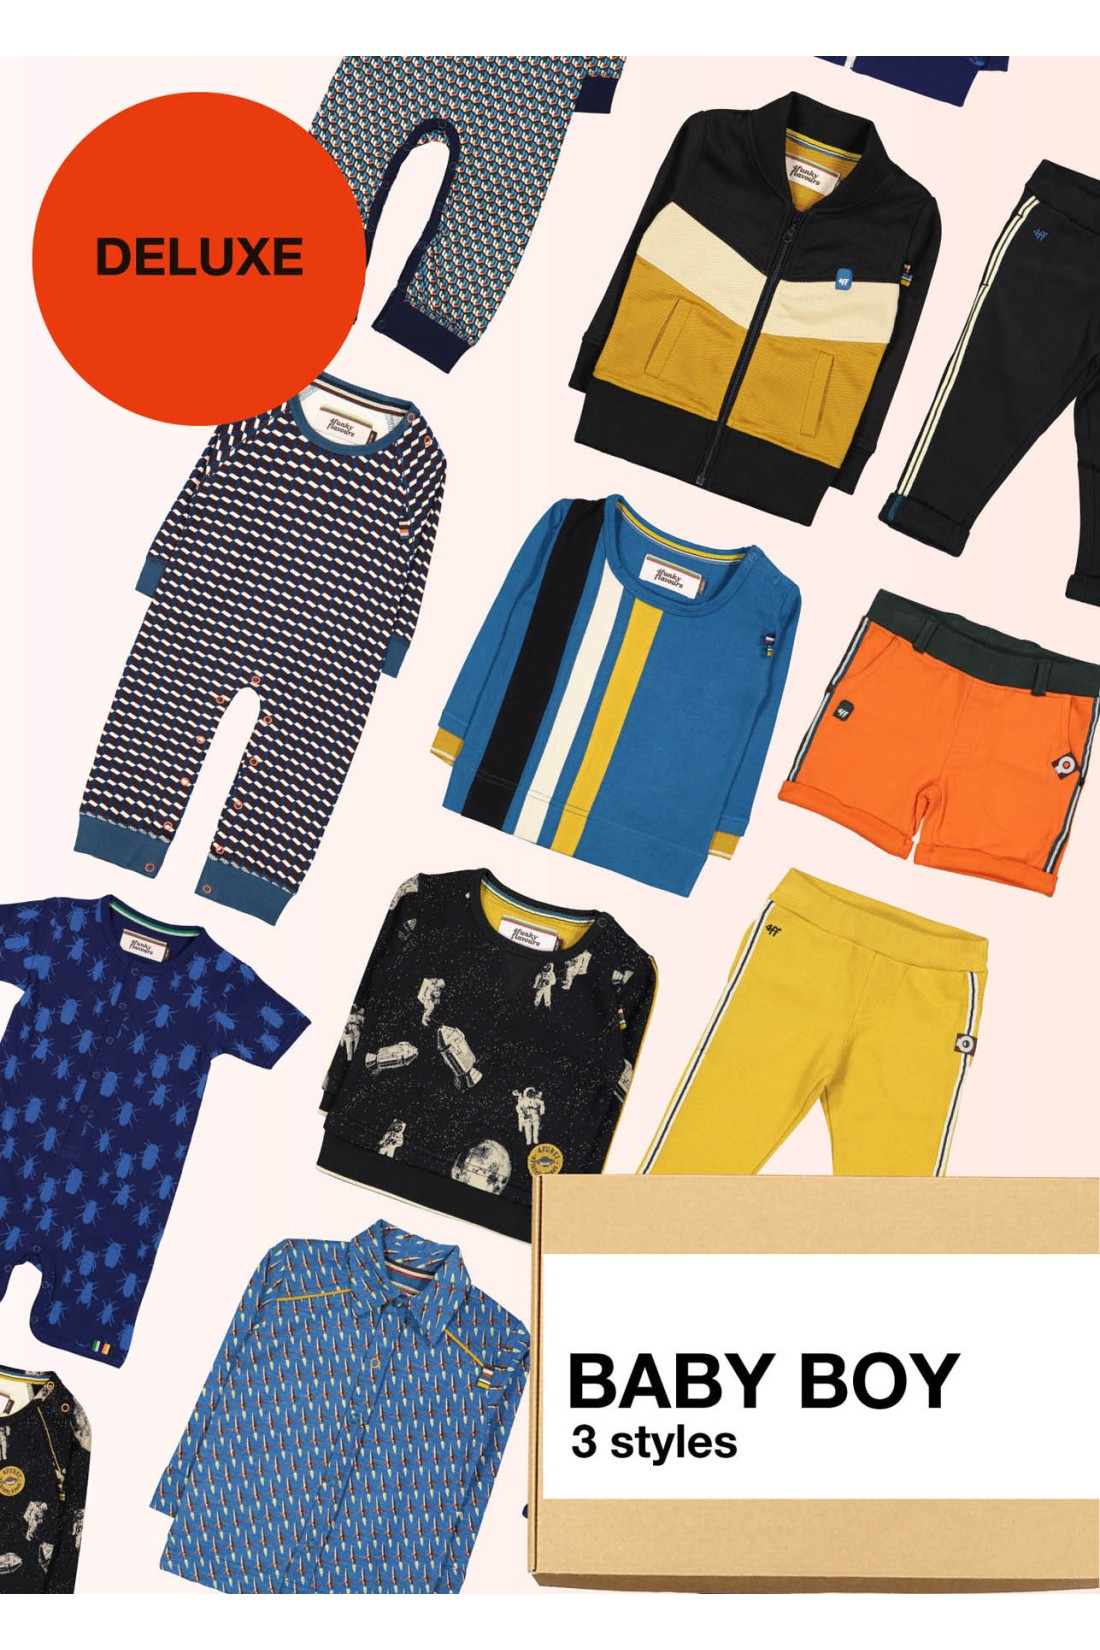 Surprise Box Baby Boy Deluxe - 3 Styles